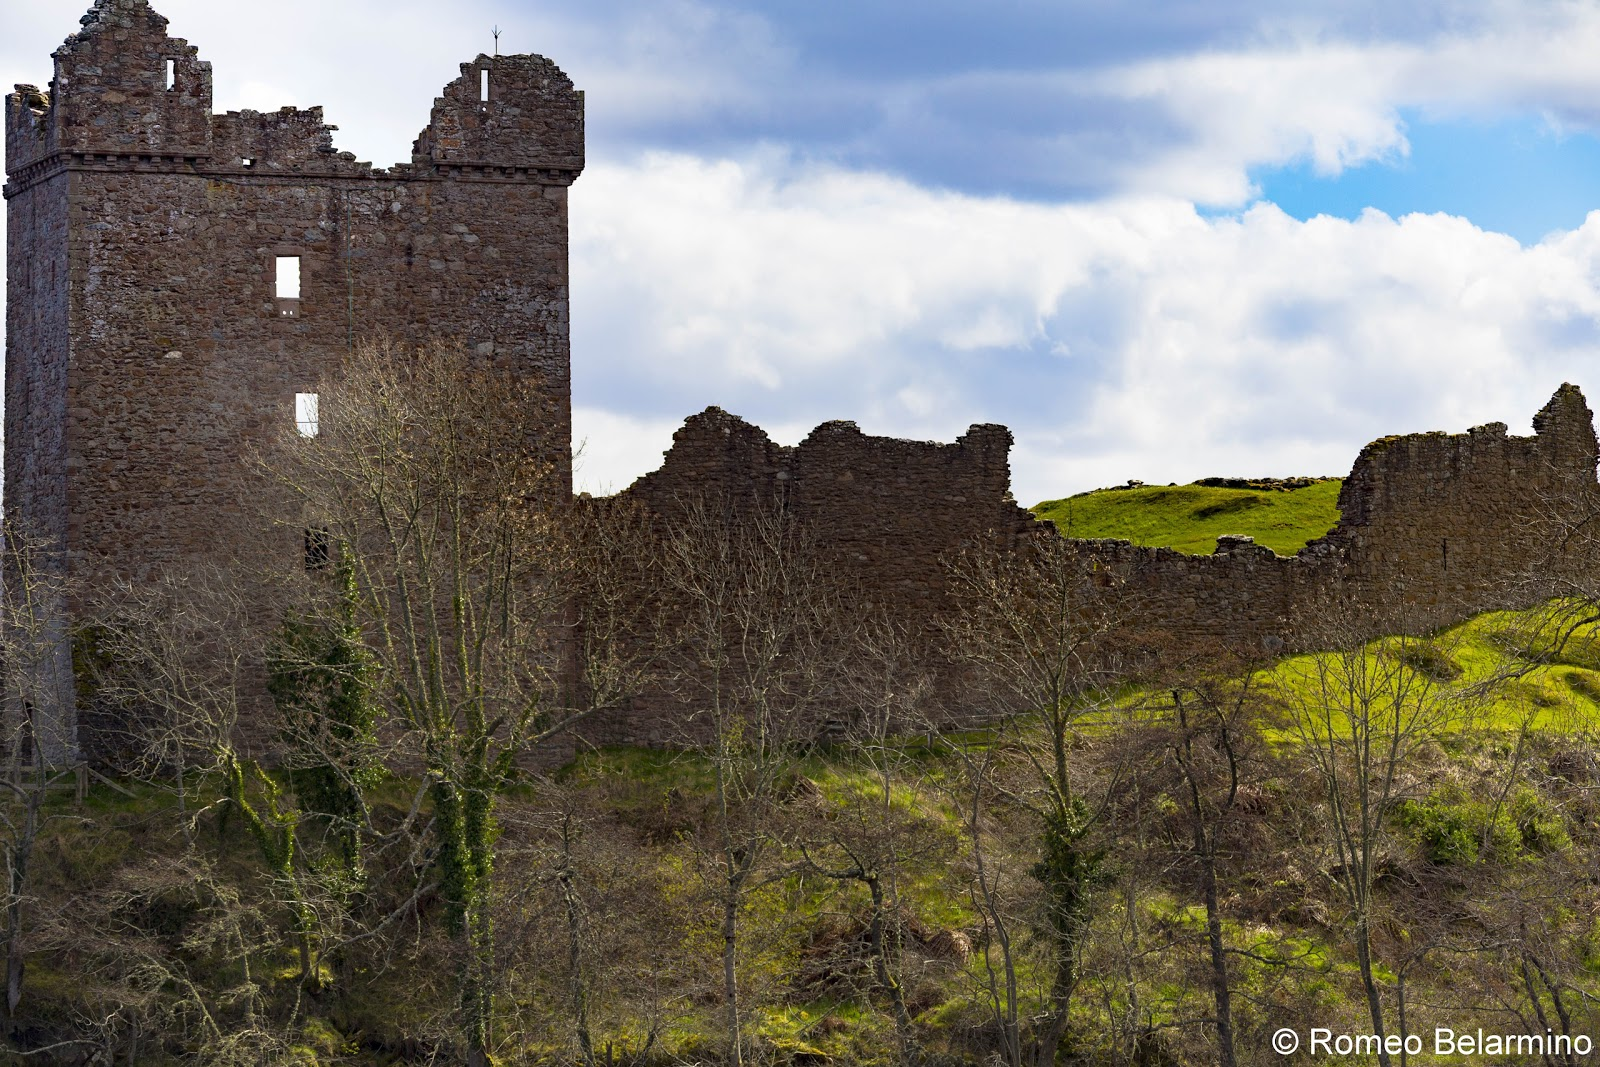 10 of the best castles in scotland for a road trip itinerary